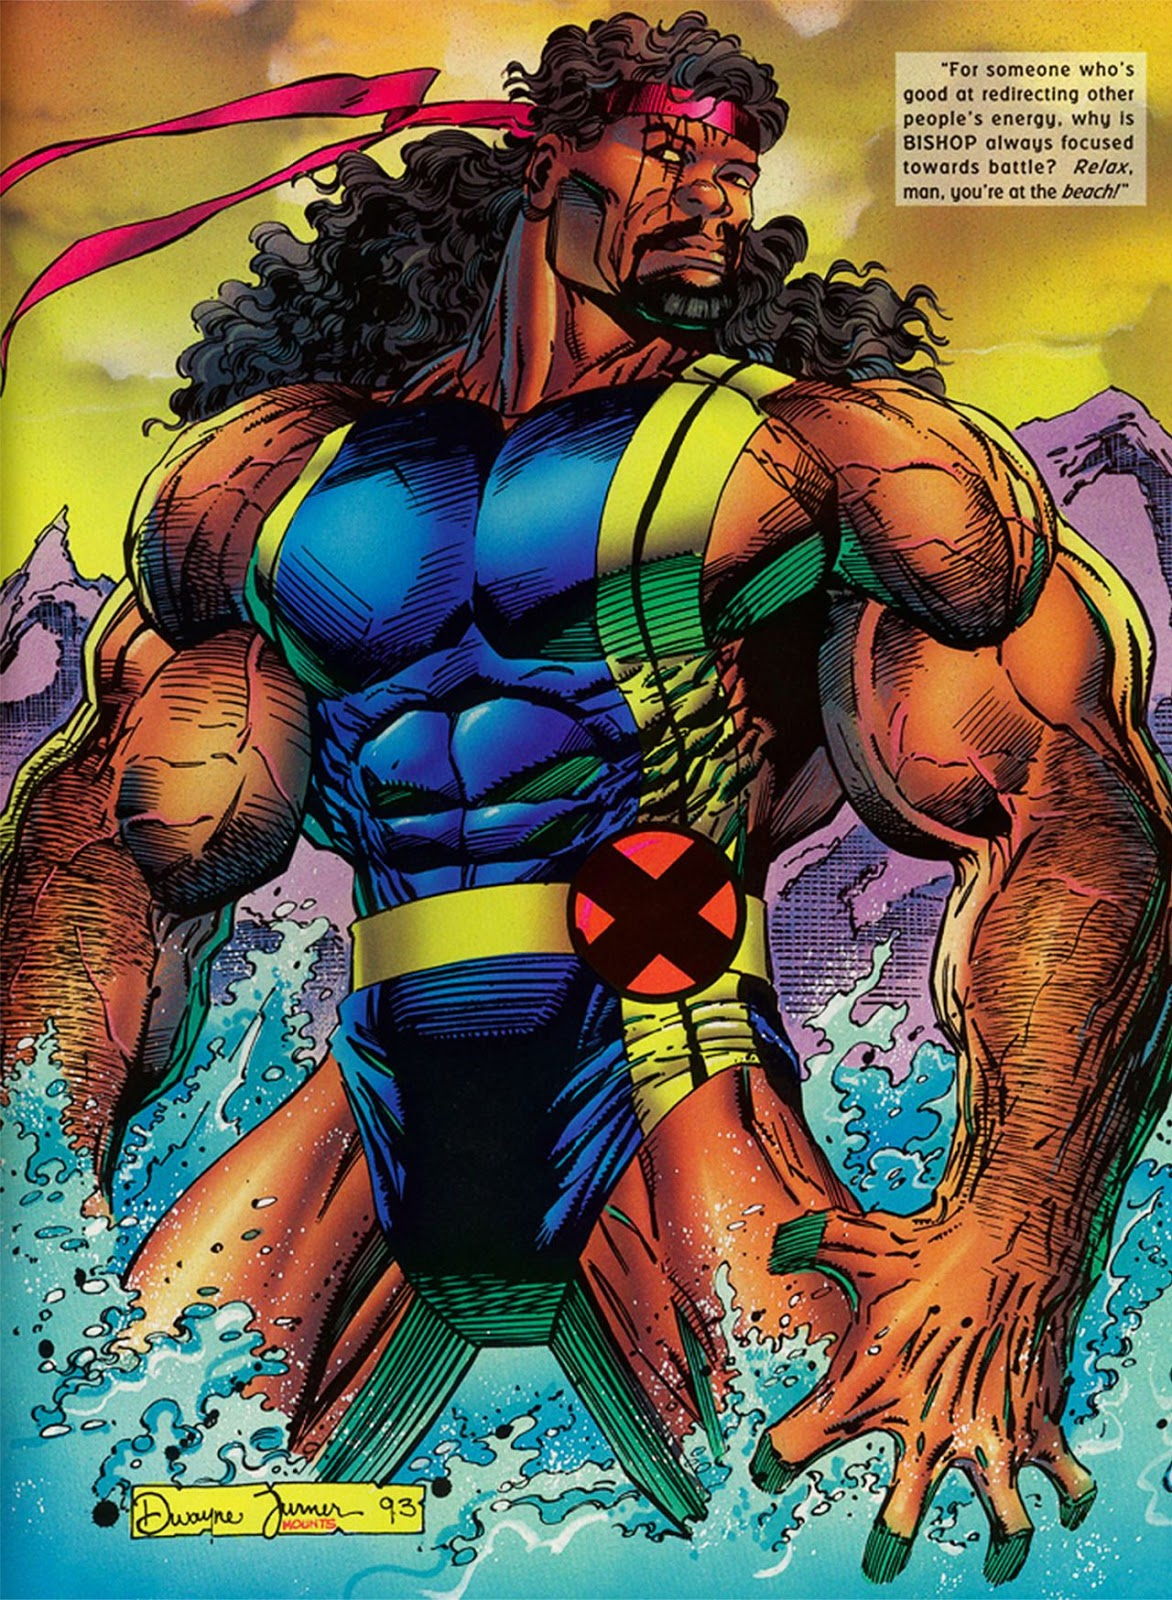 Mutant Madness: 12 Most Zaddy X-Men Characters